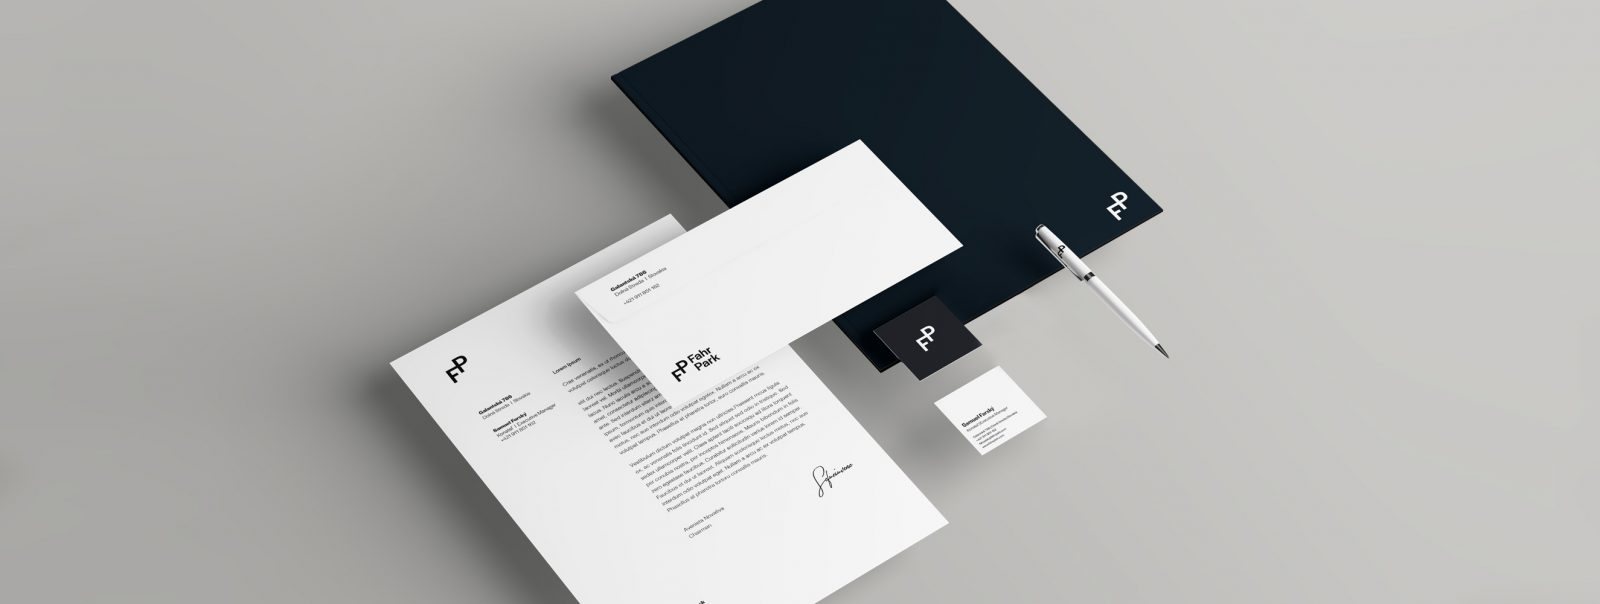 Minimally Mobile Fahr Park Visual Identity by Mendelssohn